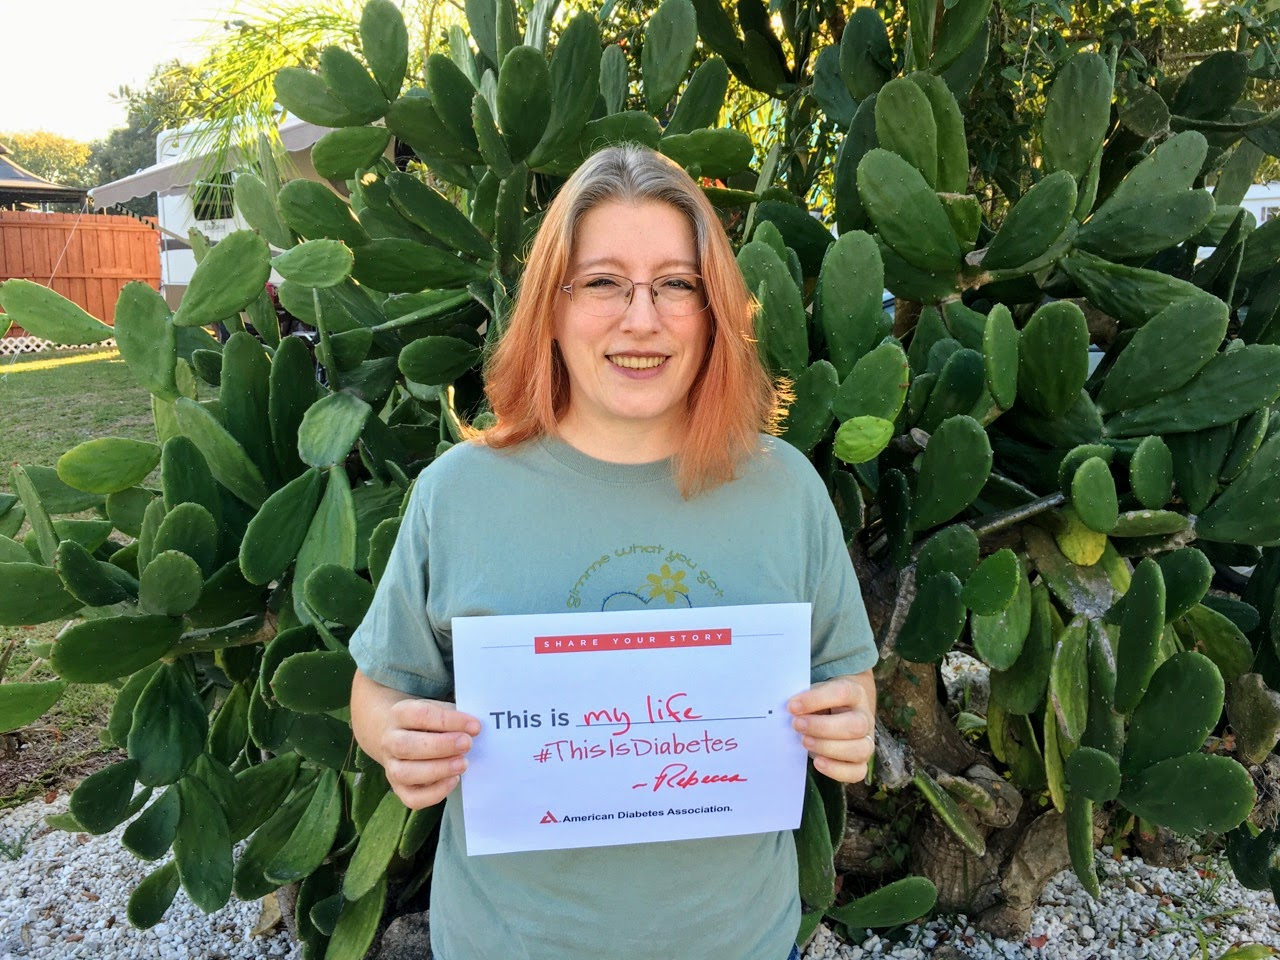 Rebecca Dugas holding sign in front of cactus